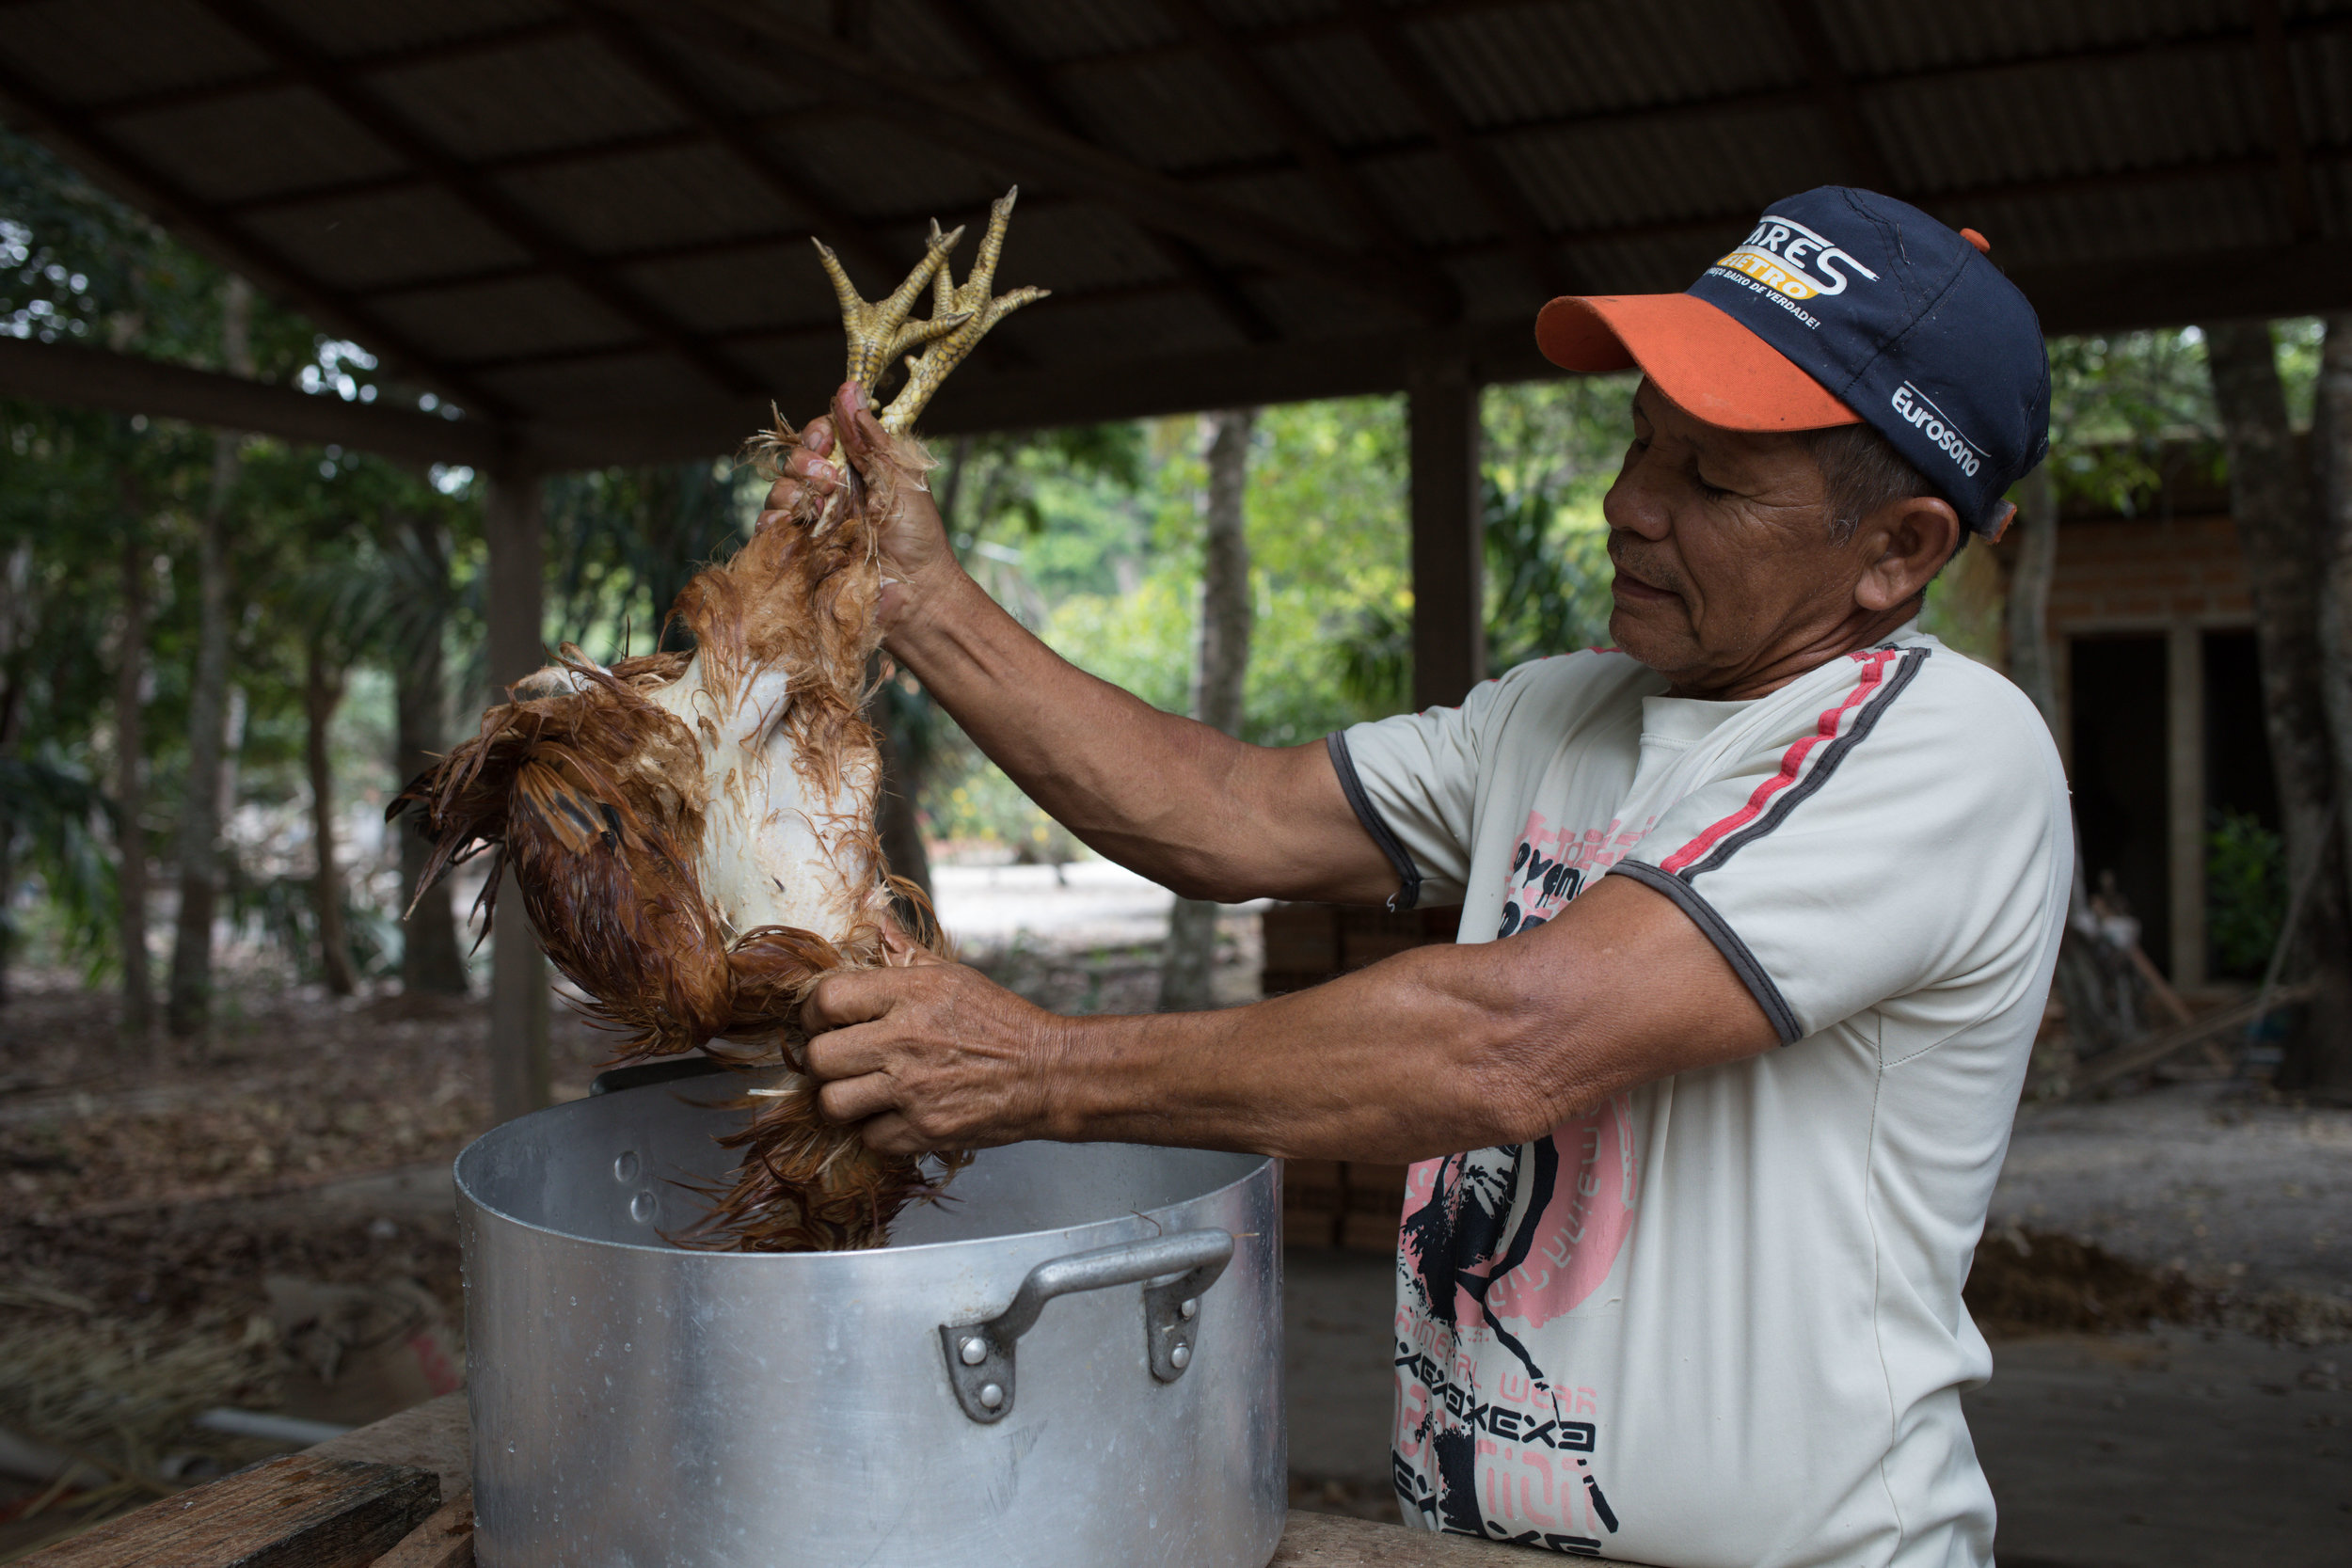 Making lunch in a remote area in Pará, Brazil